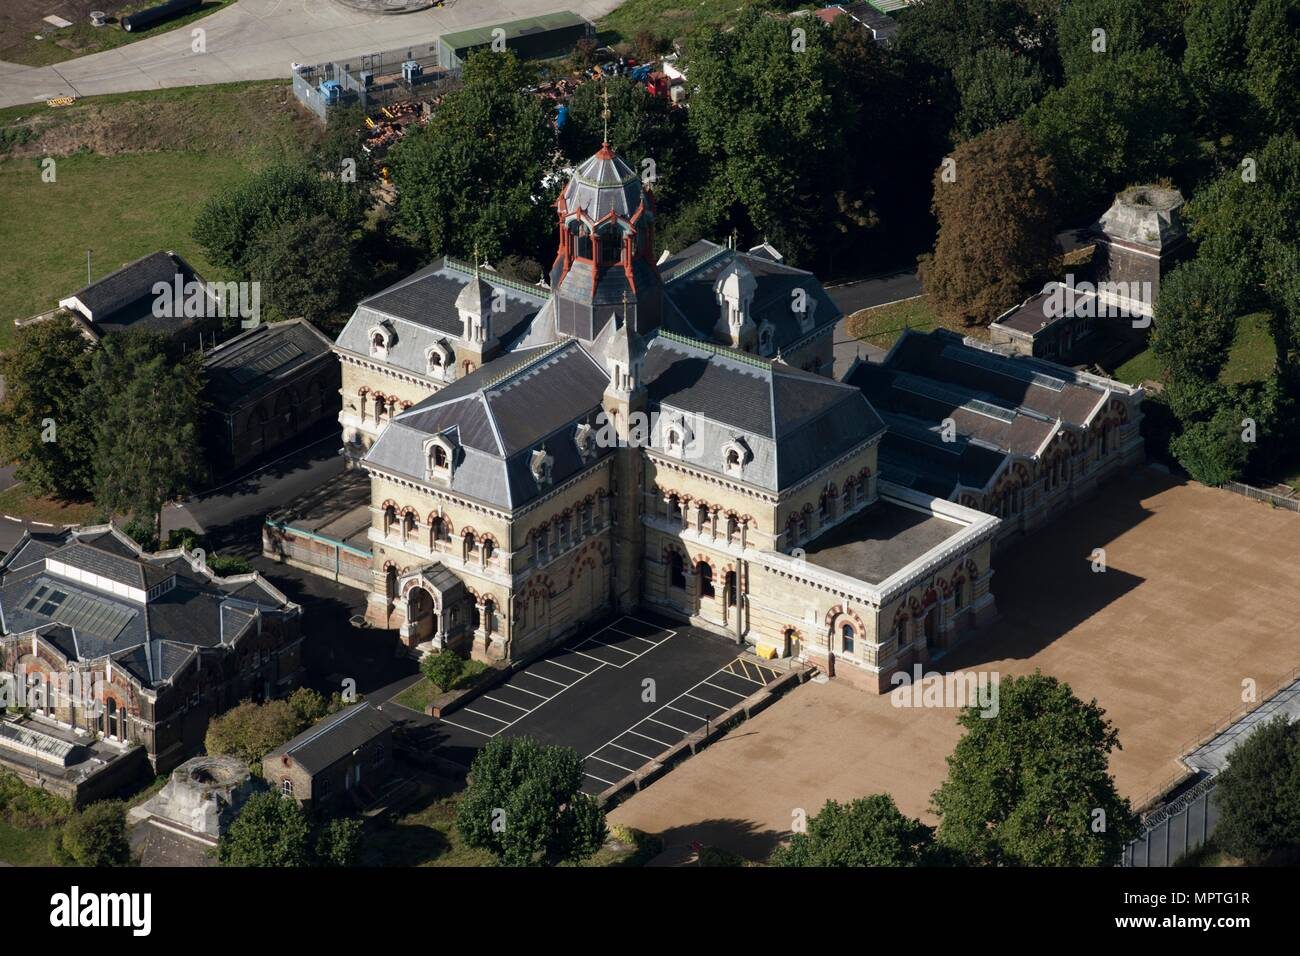 Abbey Mills Pumping Station, Abbey Lane, Stratford, London, 2012. Artist: Damian Grady. - Stock Image